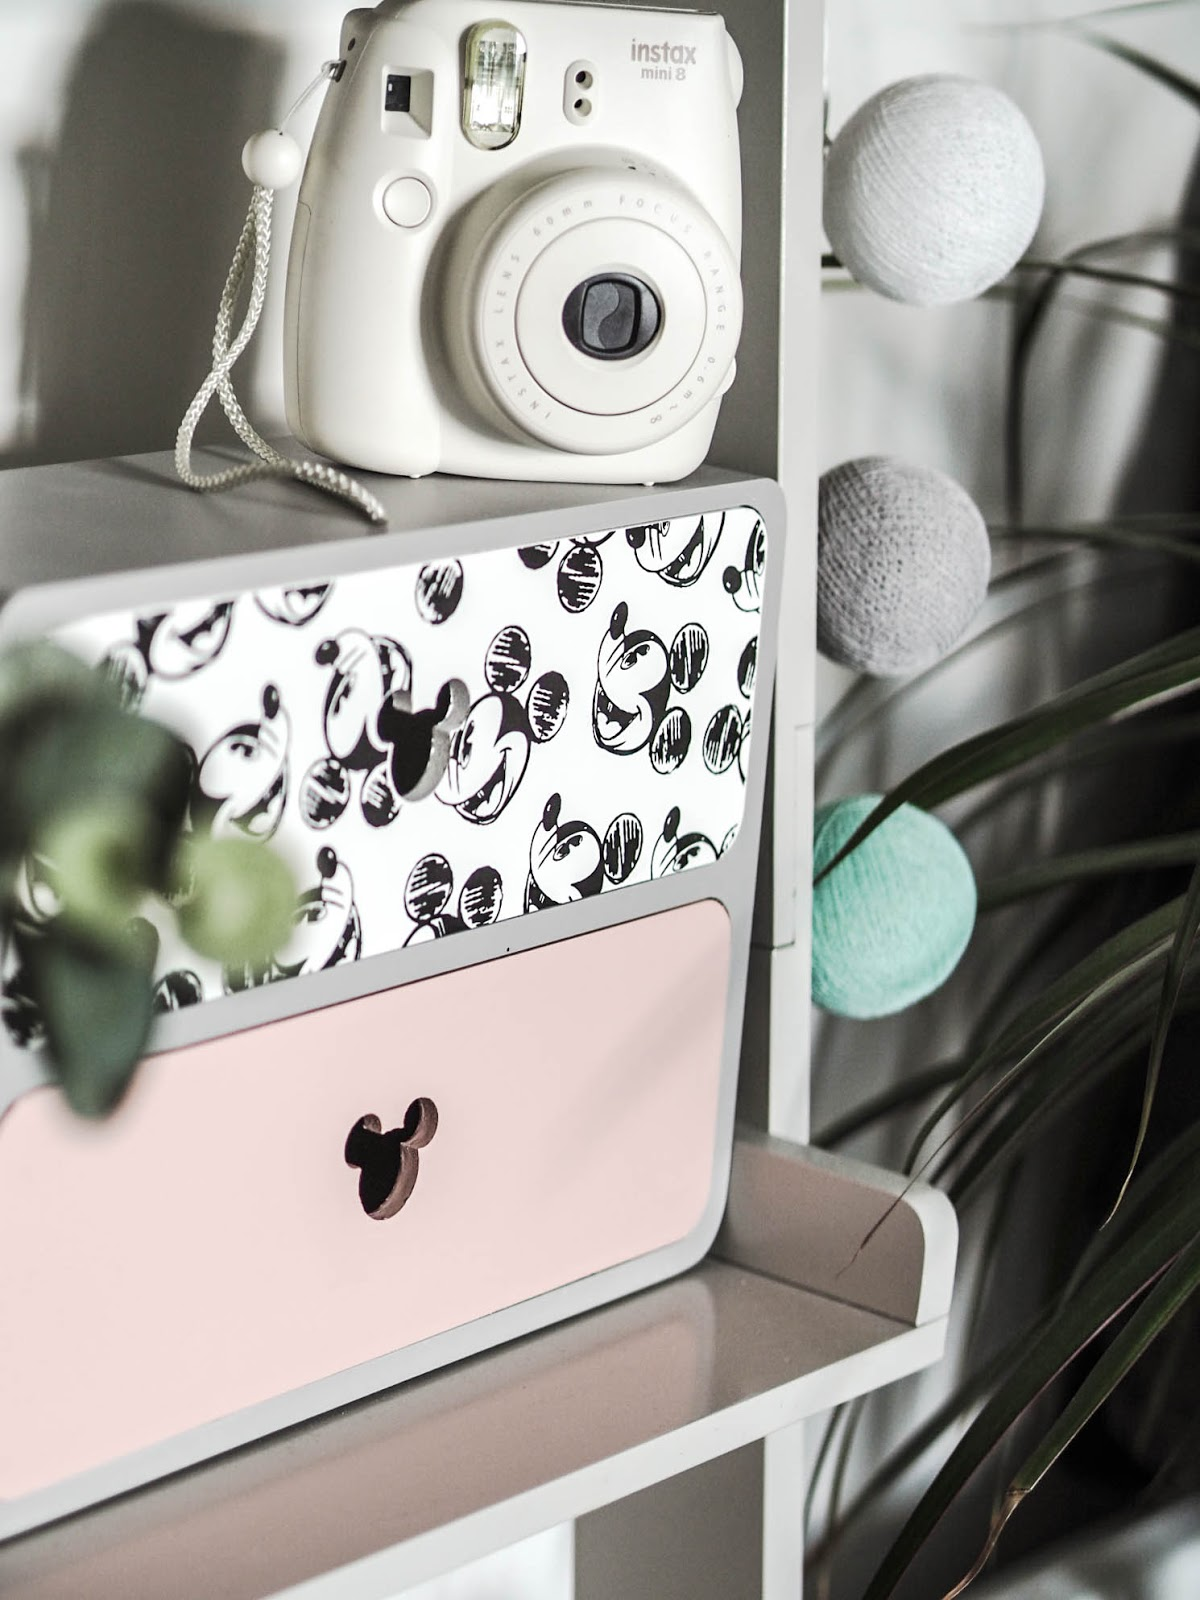 Primark Disney Mickey Mouse Drawers